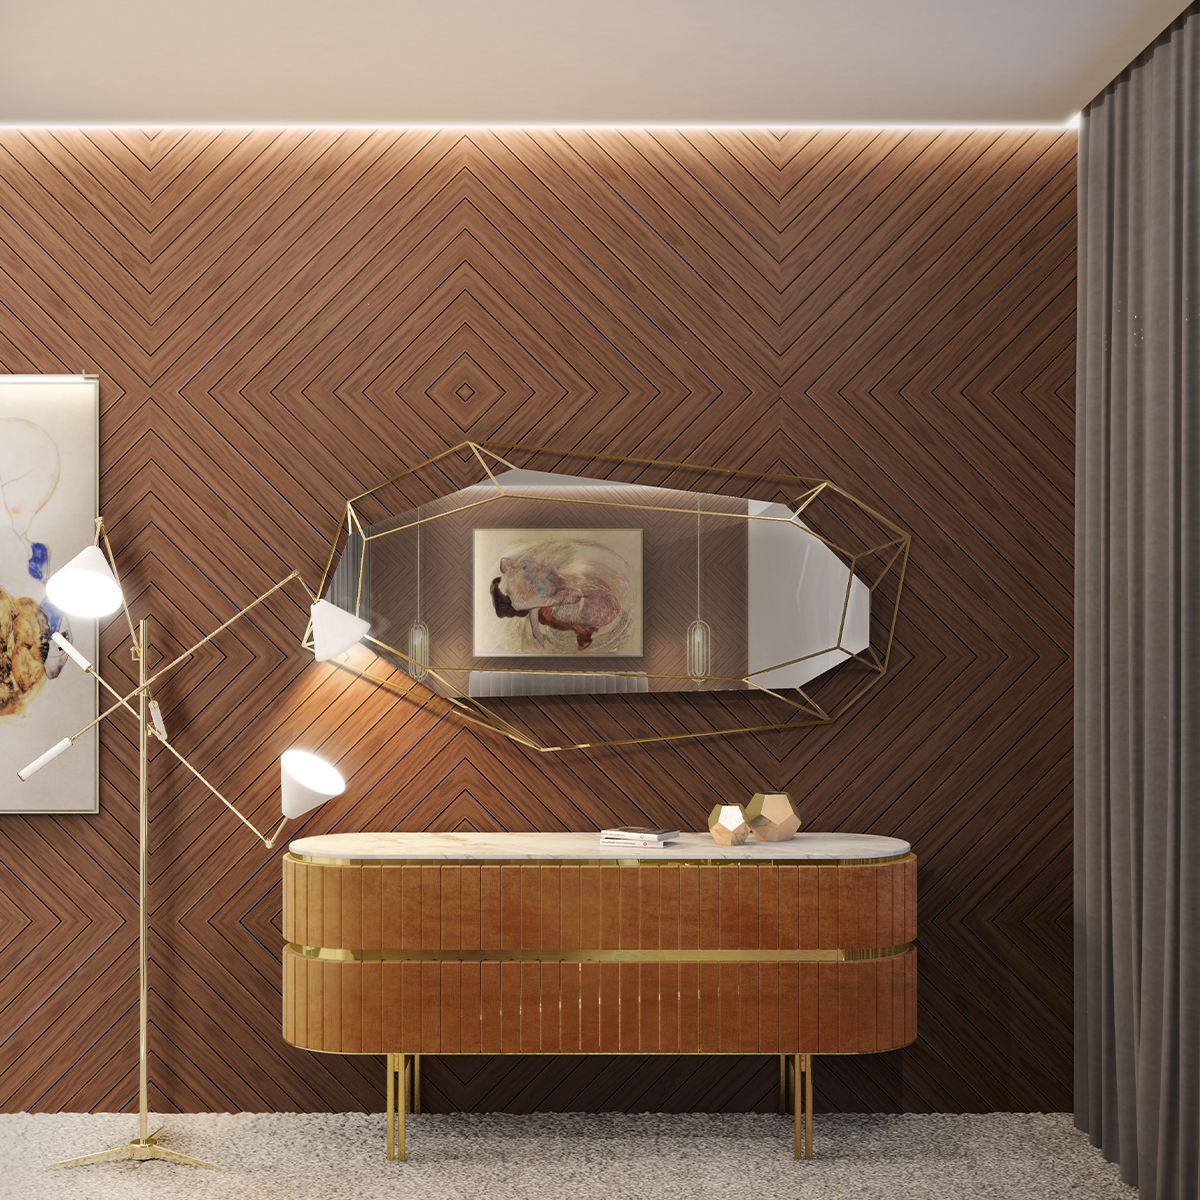 Top 25 Luxury Mirrors That Will Enhance Your Home_2 luxury mirrors Top 20 Luxury Mirrors That Will Enhance Your Home Top 25 Luxury Mirrors That Will Enhance Your Home 2